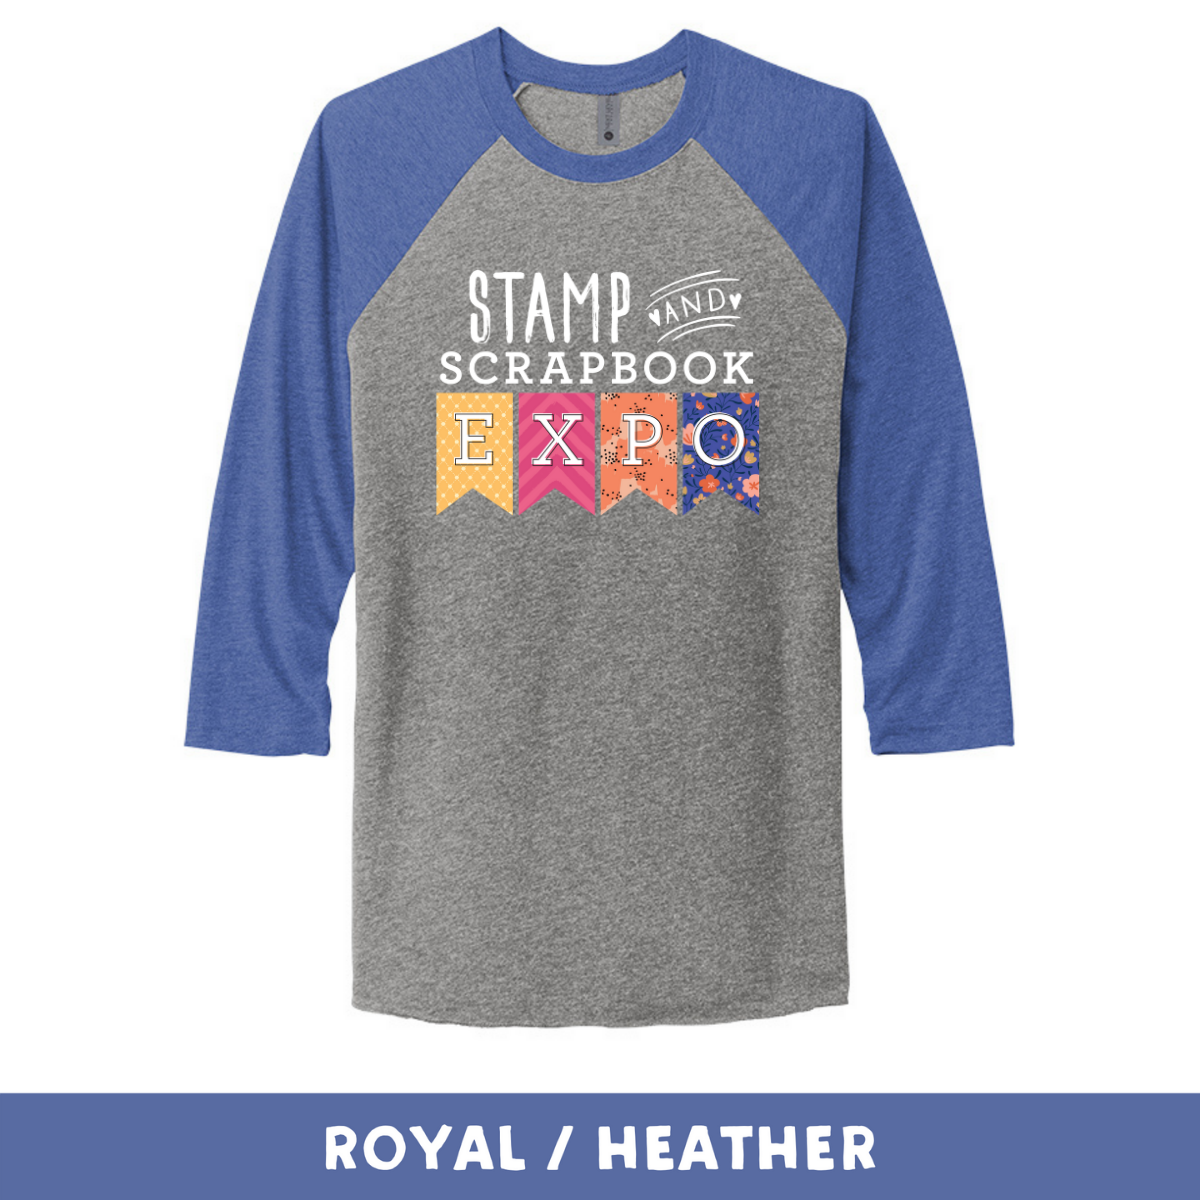 Royal Heather - Unisex Tri-Blend 3/4 Sleeve Raglan Tee - Stamp & Scrapbook Expo Color Logo